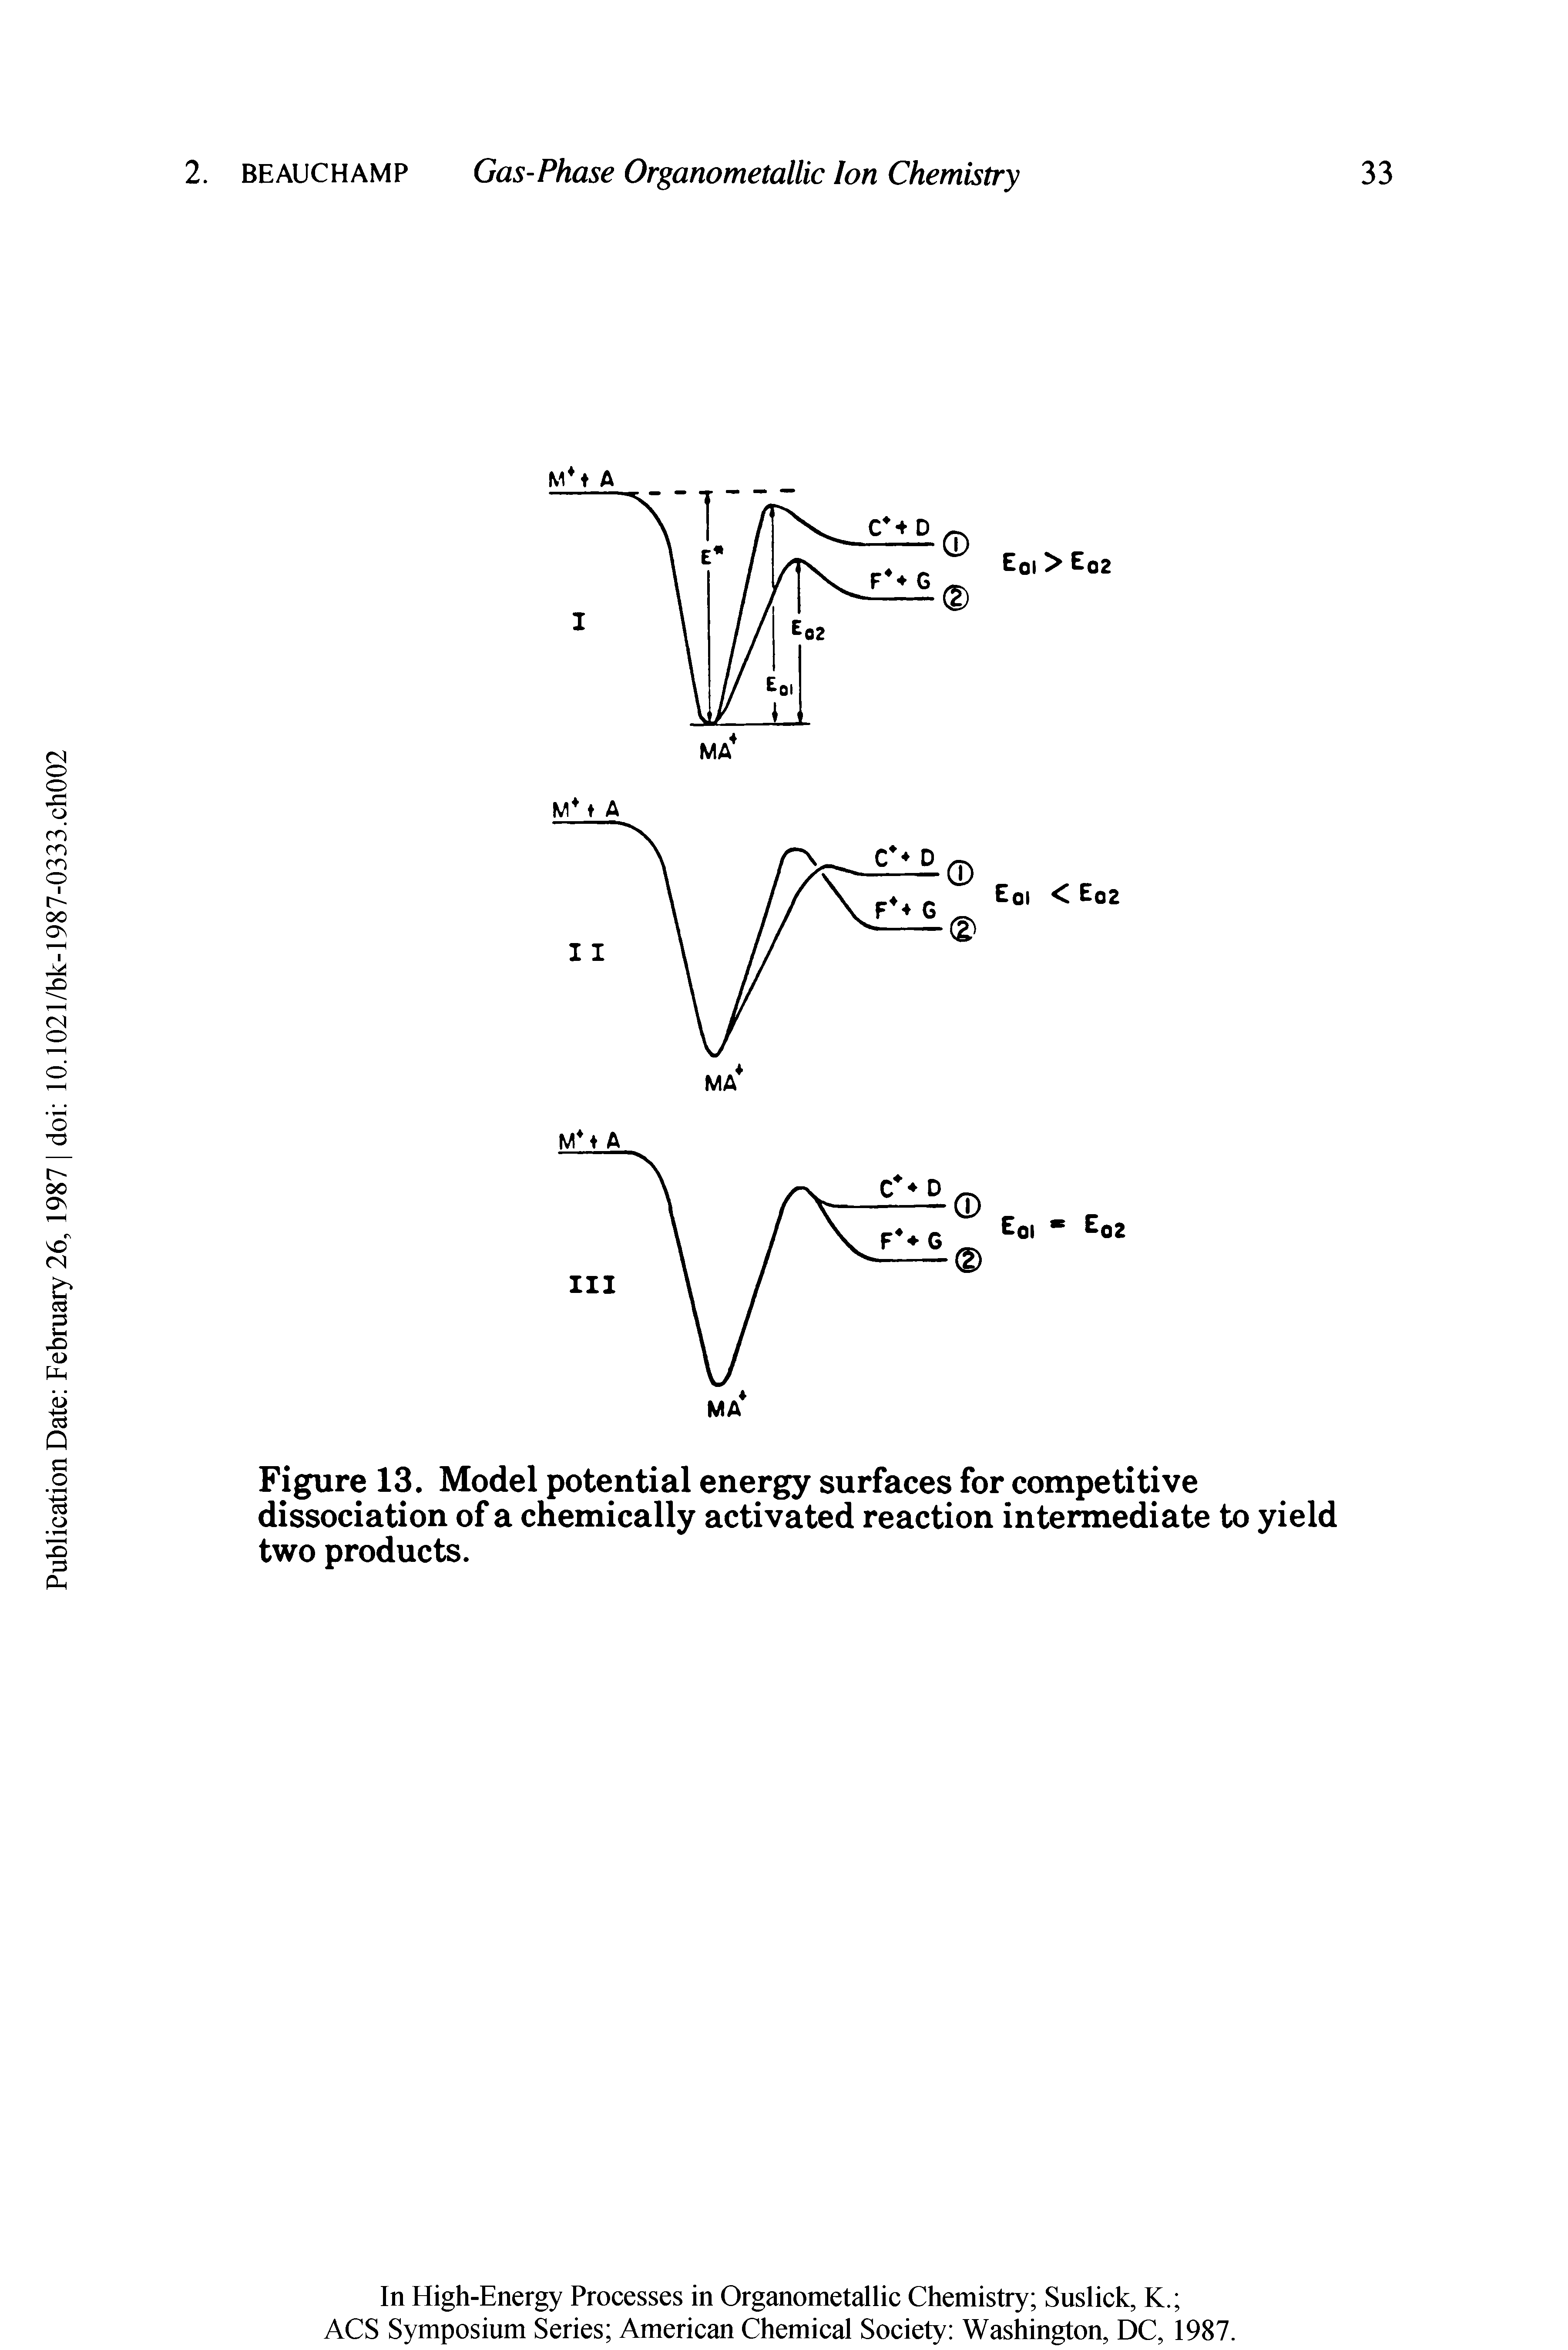 "Figure 13. <a href=""/info/potential_energy_surfaces_models"">Model potential energy surfaces</a> for competitive dissociation of a chemically activated reaction intermediate to yield two products."